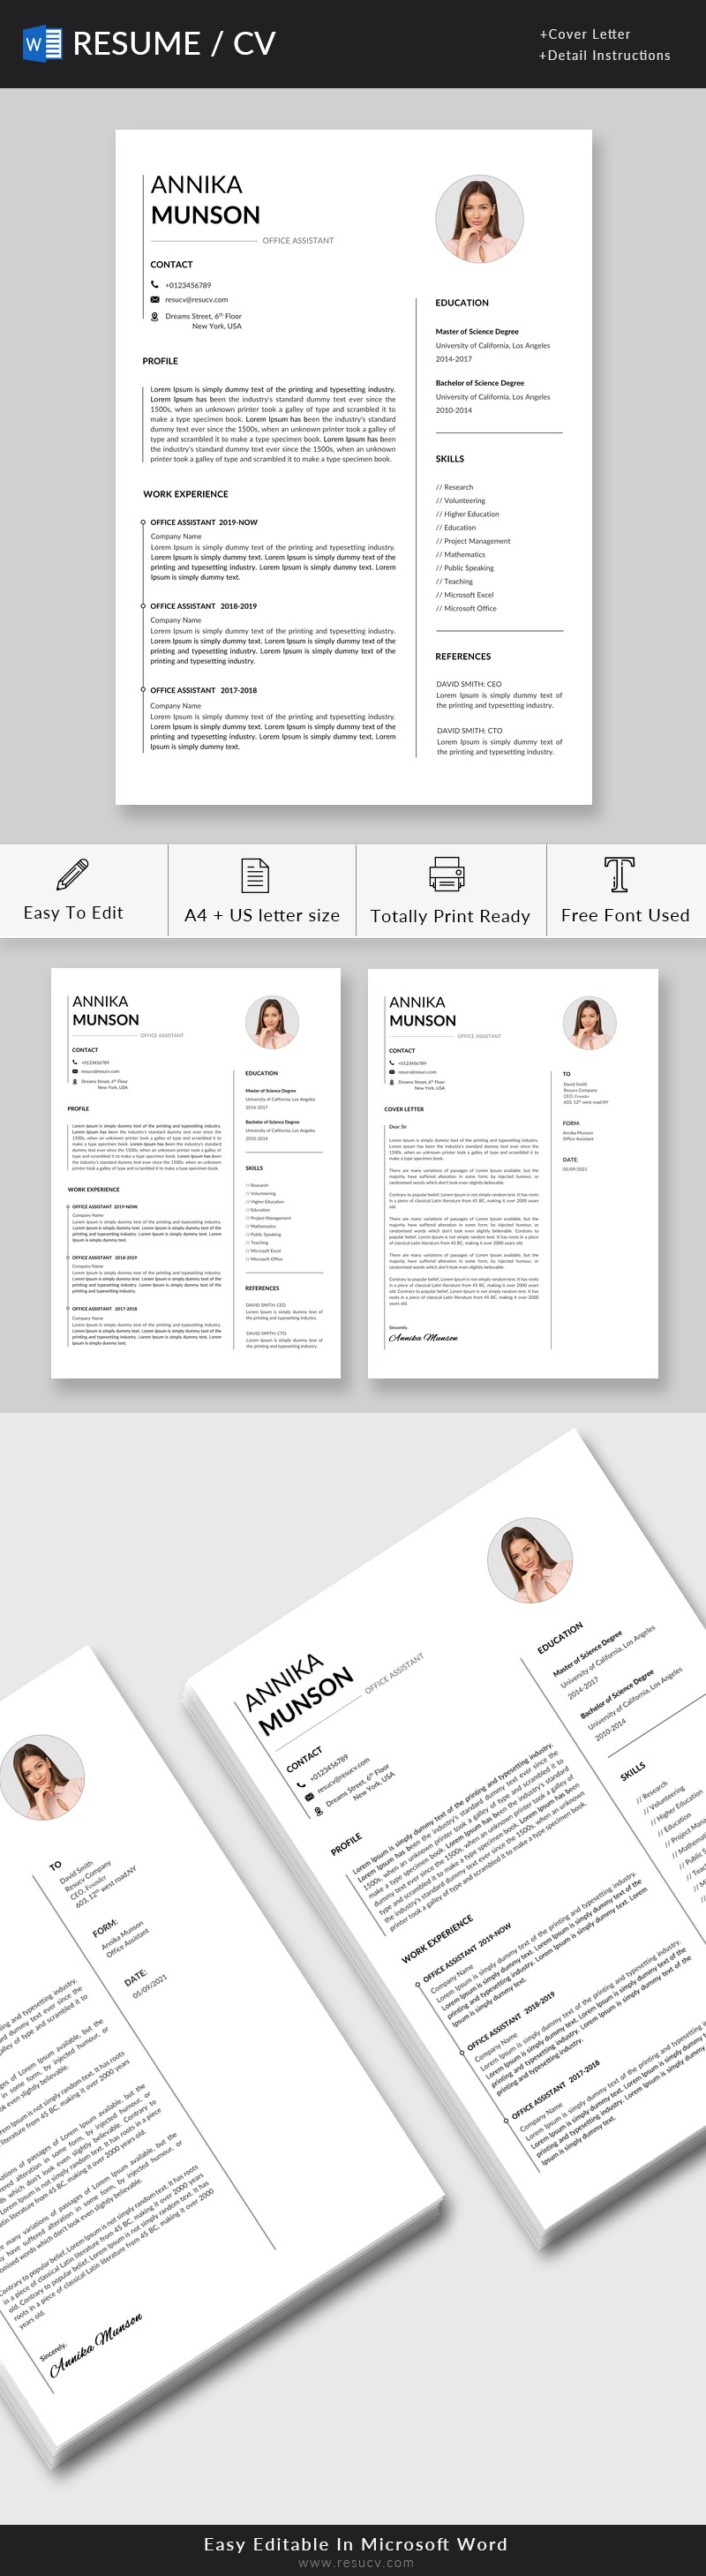 Simple Office Assistant Resume Template | Administrative Assistant Resume Word Format Download